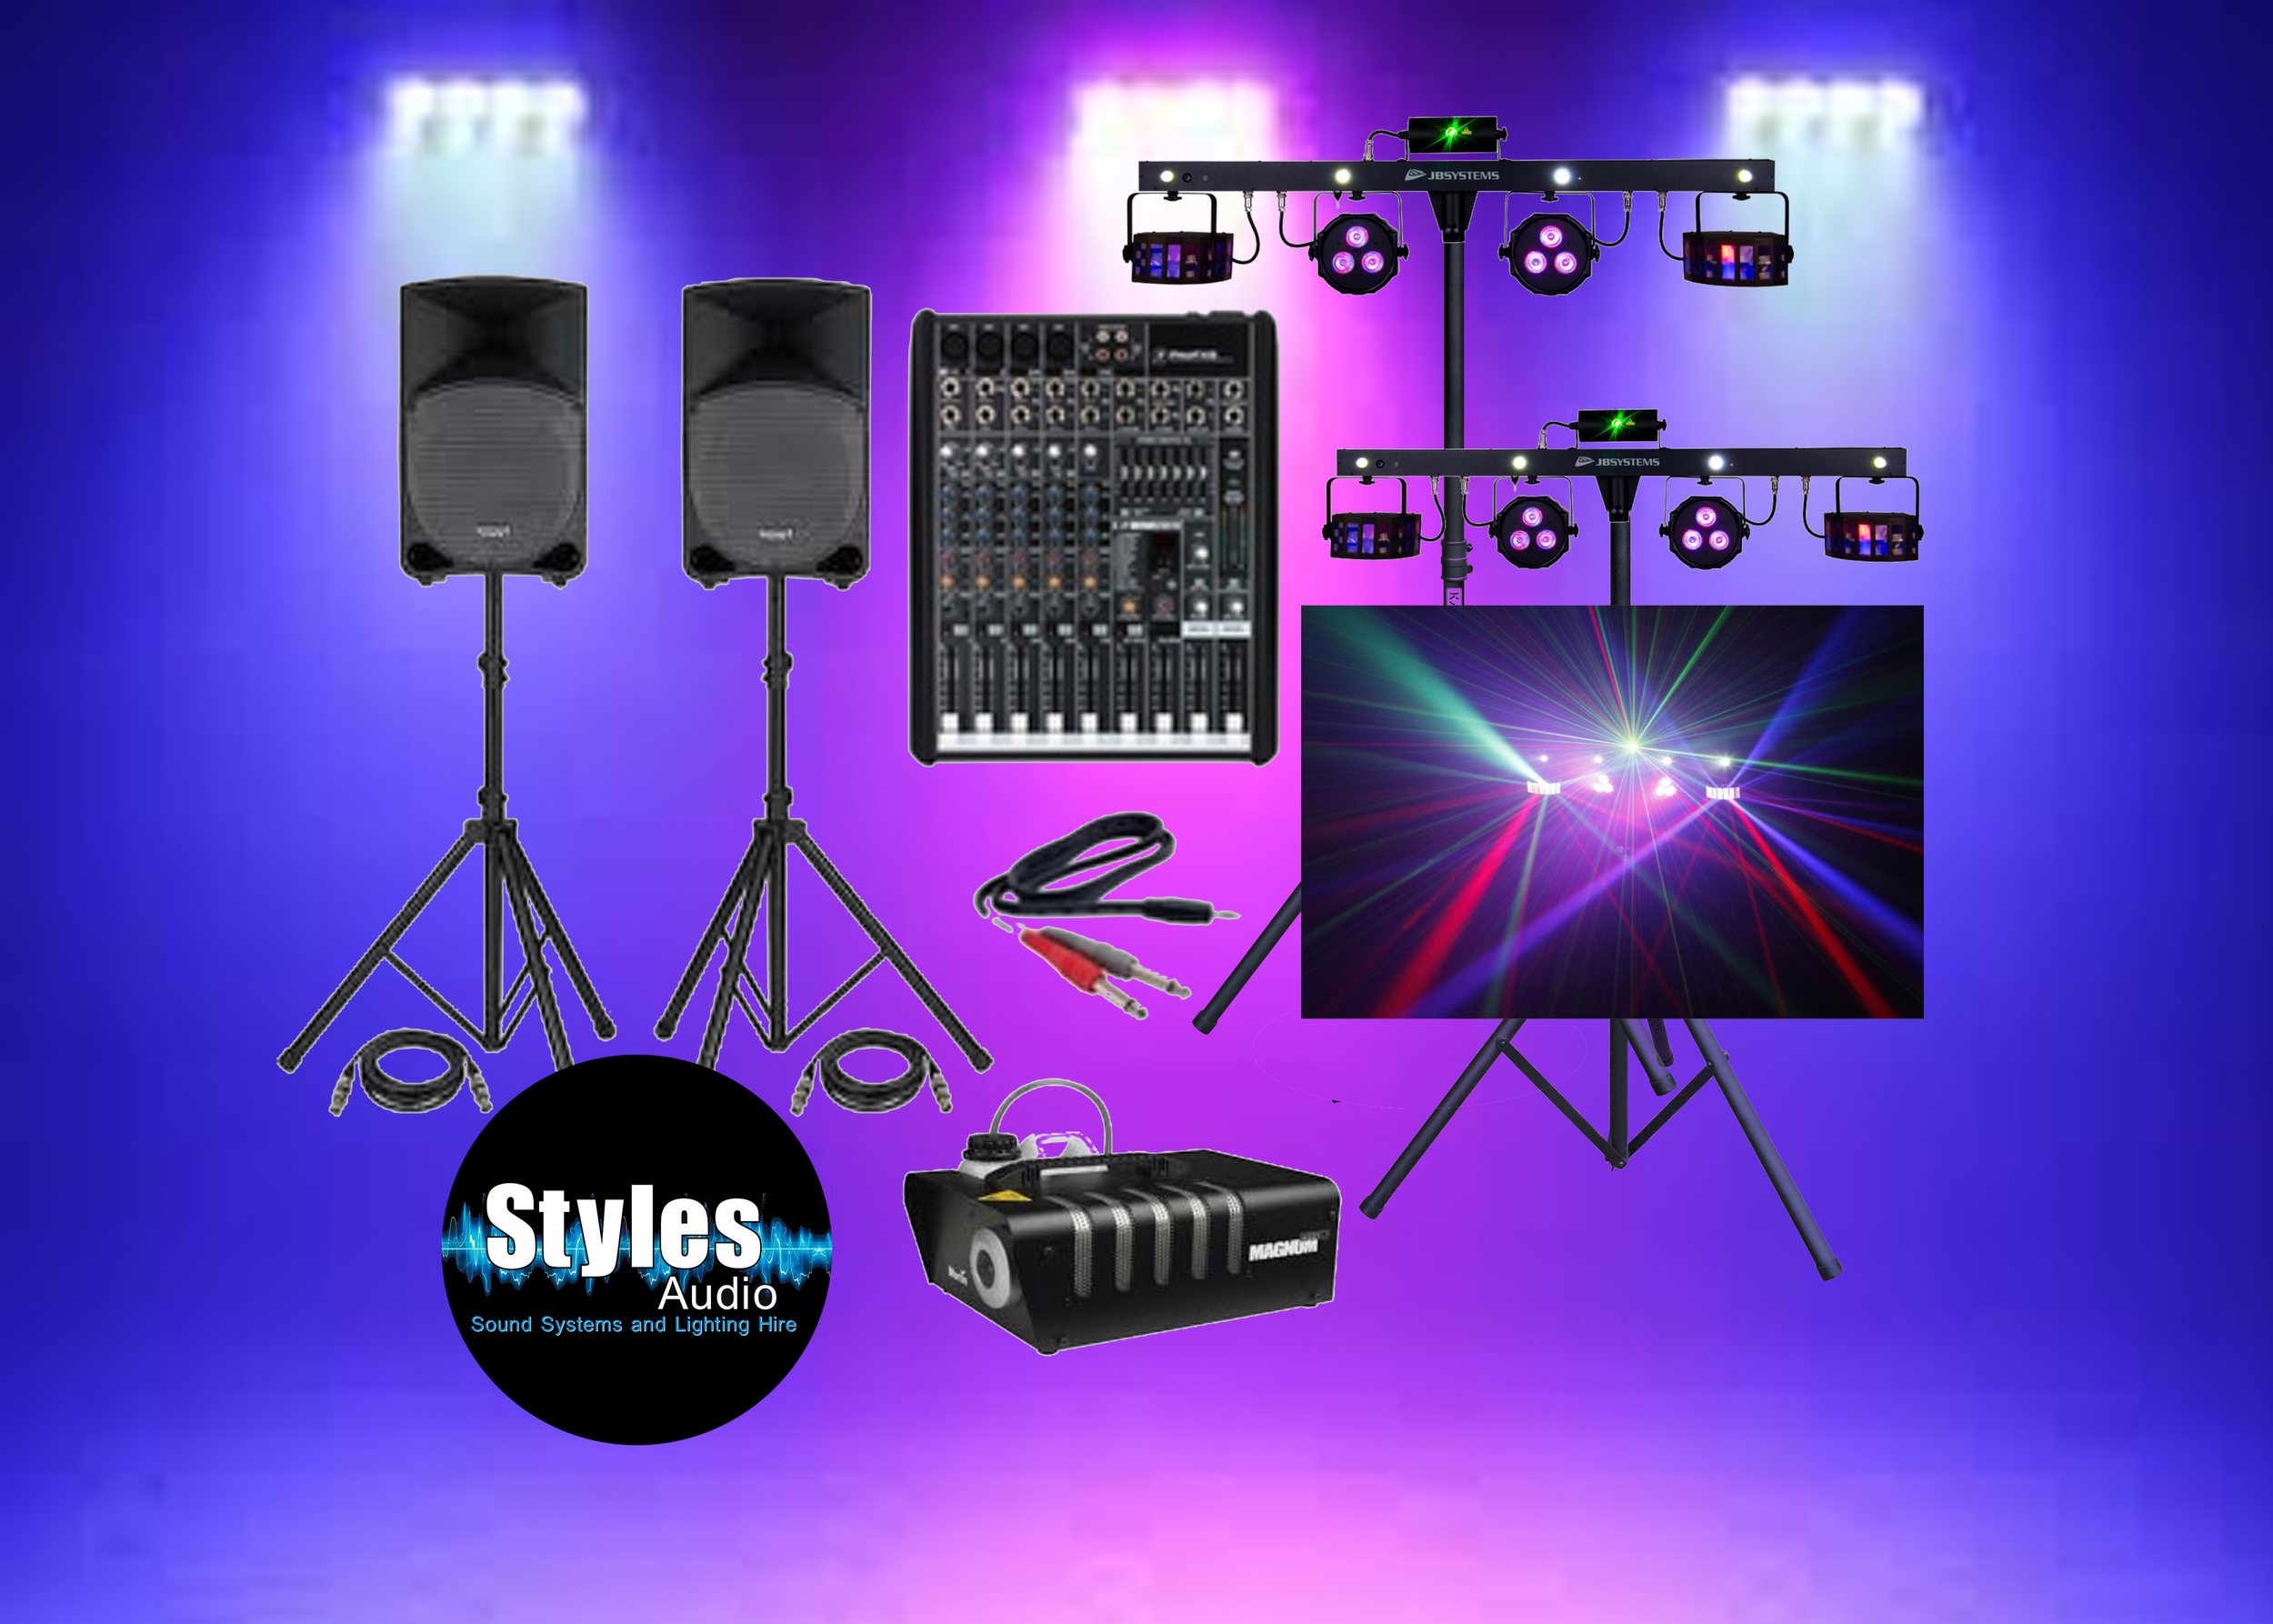 Styles-Audio-ipod-party-ighting-package-2